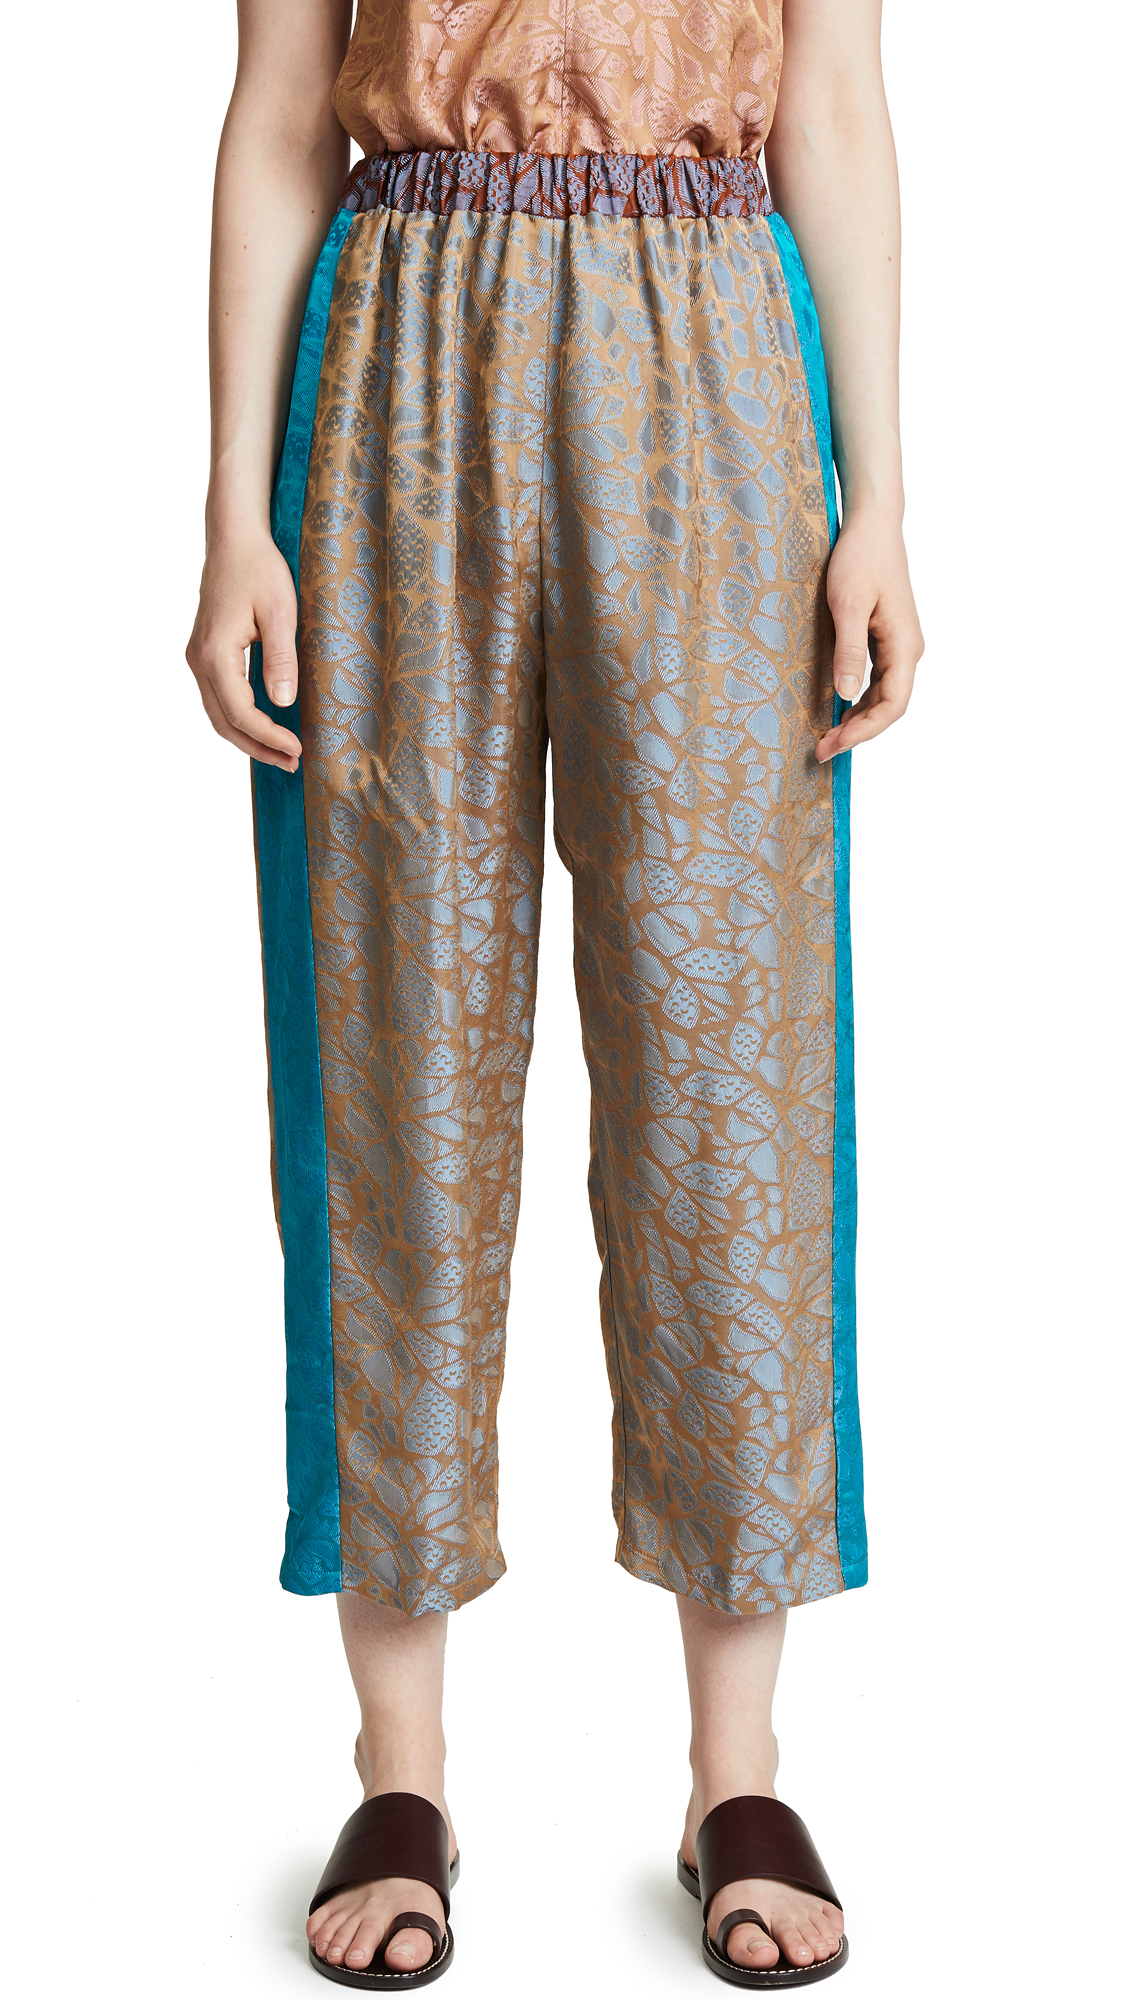 GIADA FORTE Autumn Leaf Pants in Mare